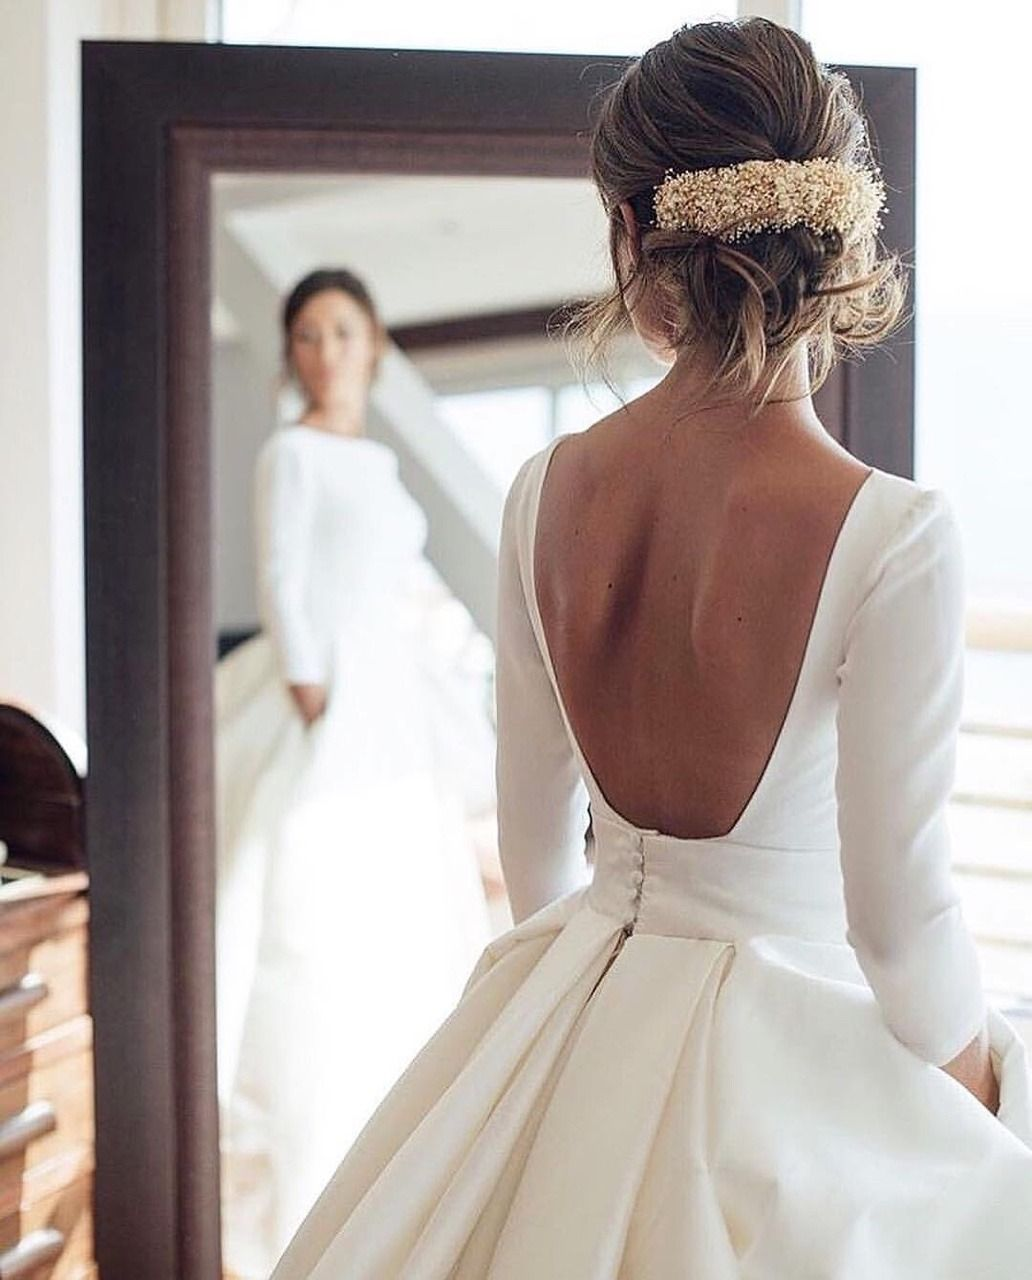 Cant Wait To Be Your Sweet Bride And Finally Tying The Knot Free To Do Whatever In The Eyes Of God Satin Wedding Gown Ball Gowns Wedding Ivory Bridal Gown